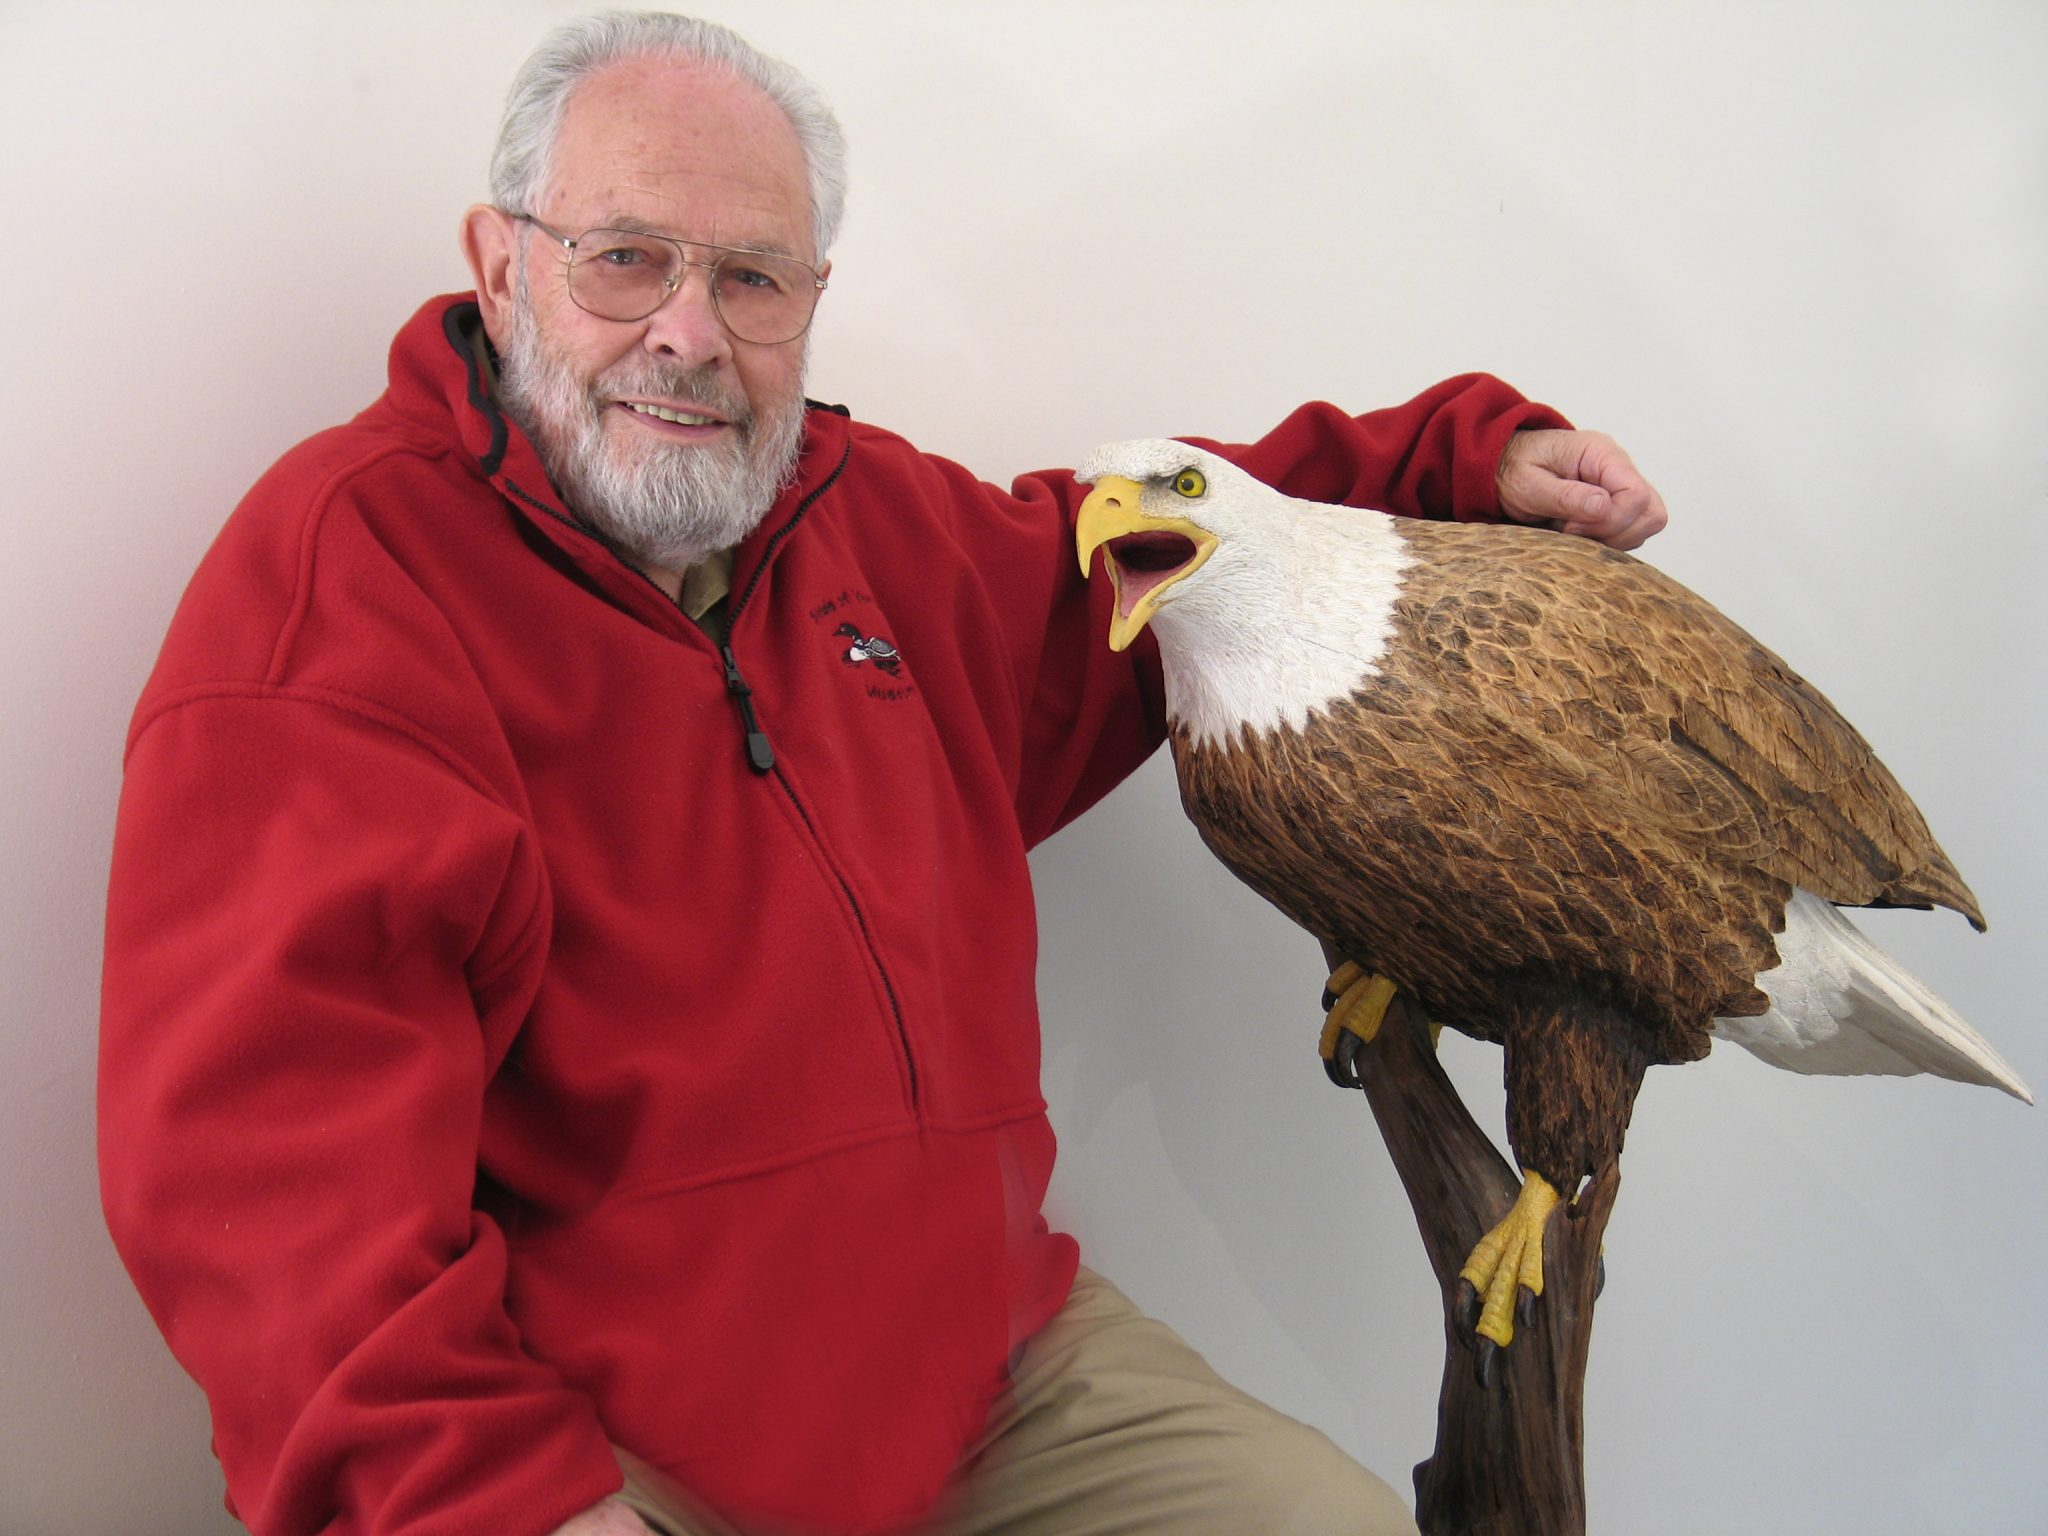 Bob Spear, Woodcarver, and his Bald Eagle carving